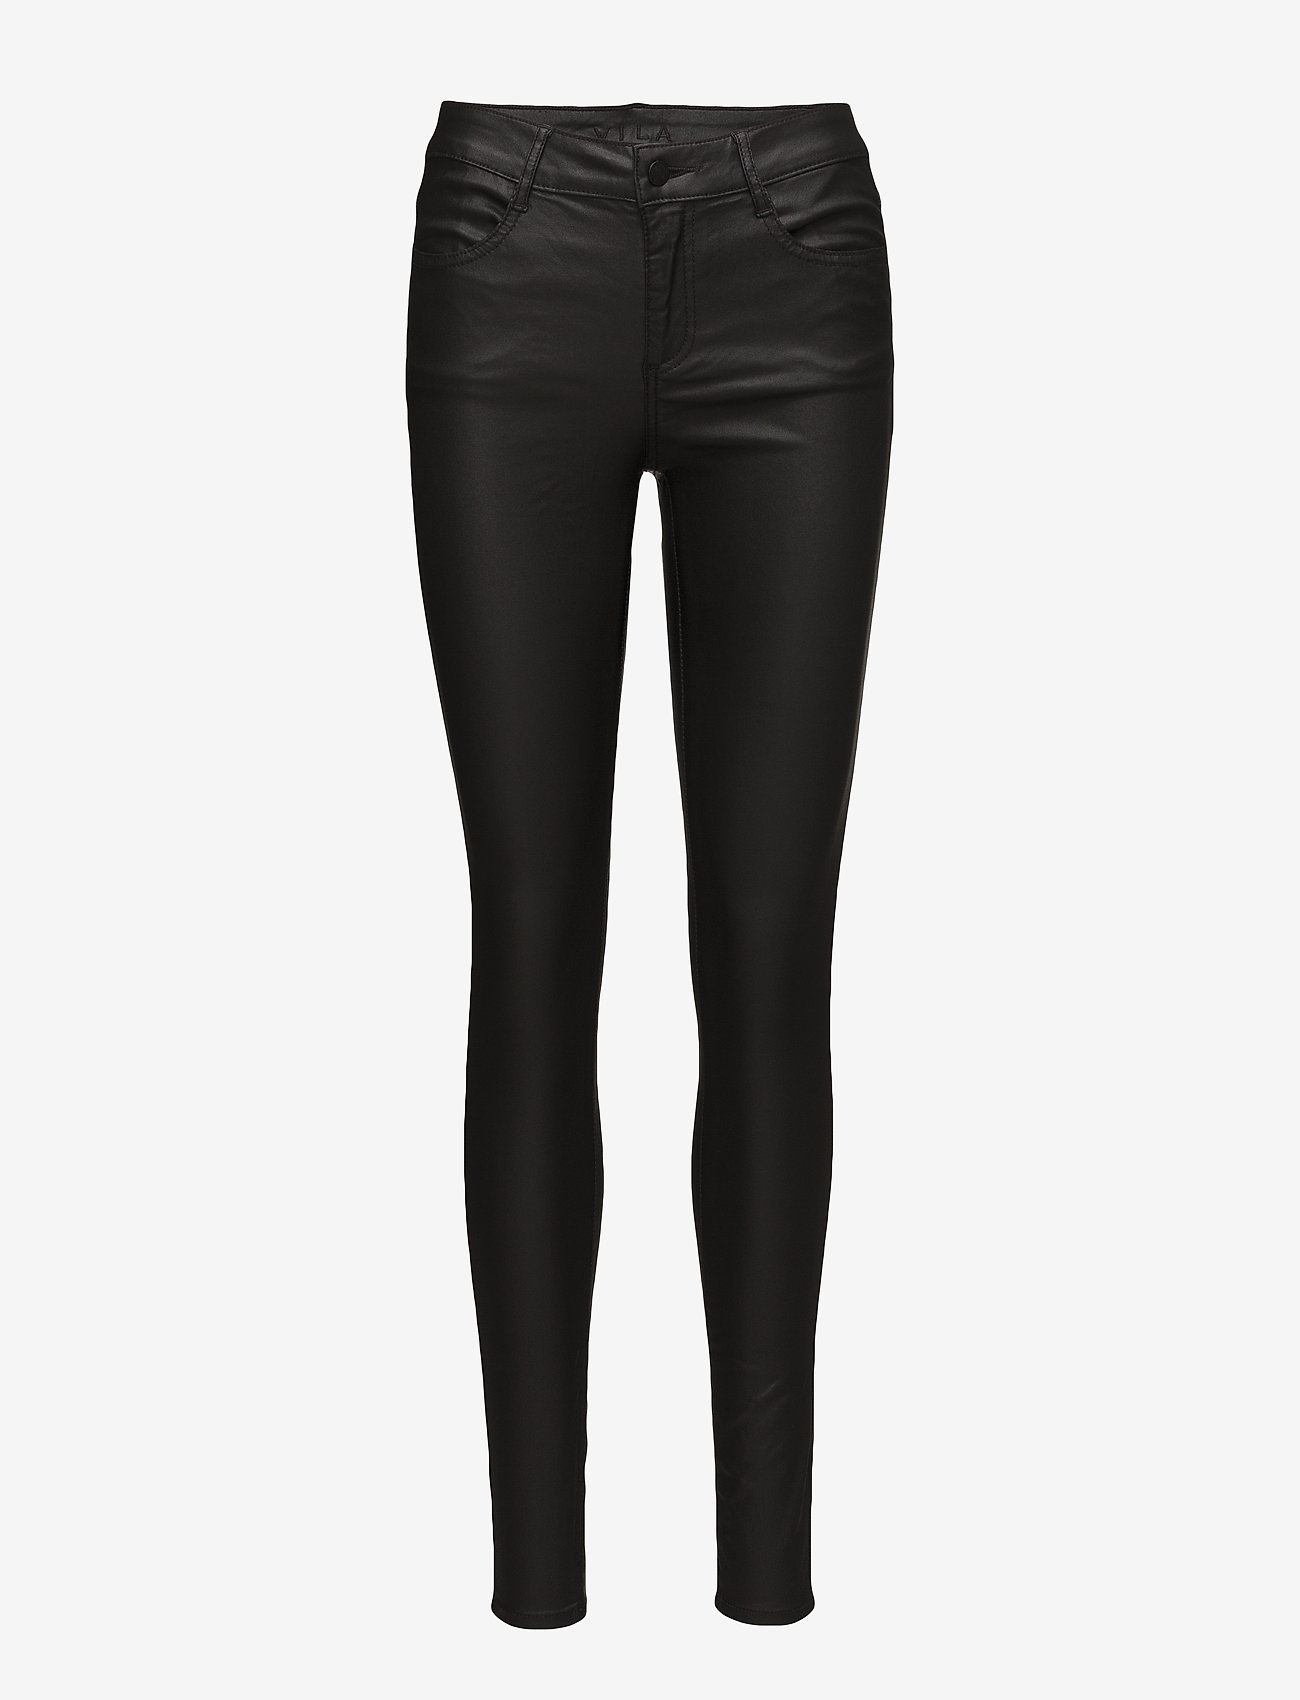 Vila - VICOMMIT COATED RWSK NEW PANT-NOOS - trousers with skinny legs - black - 0